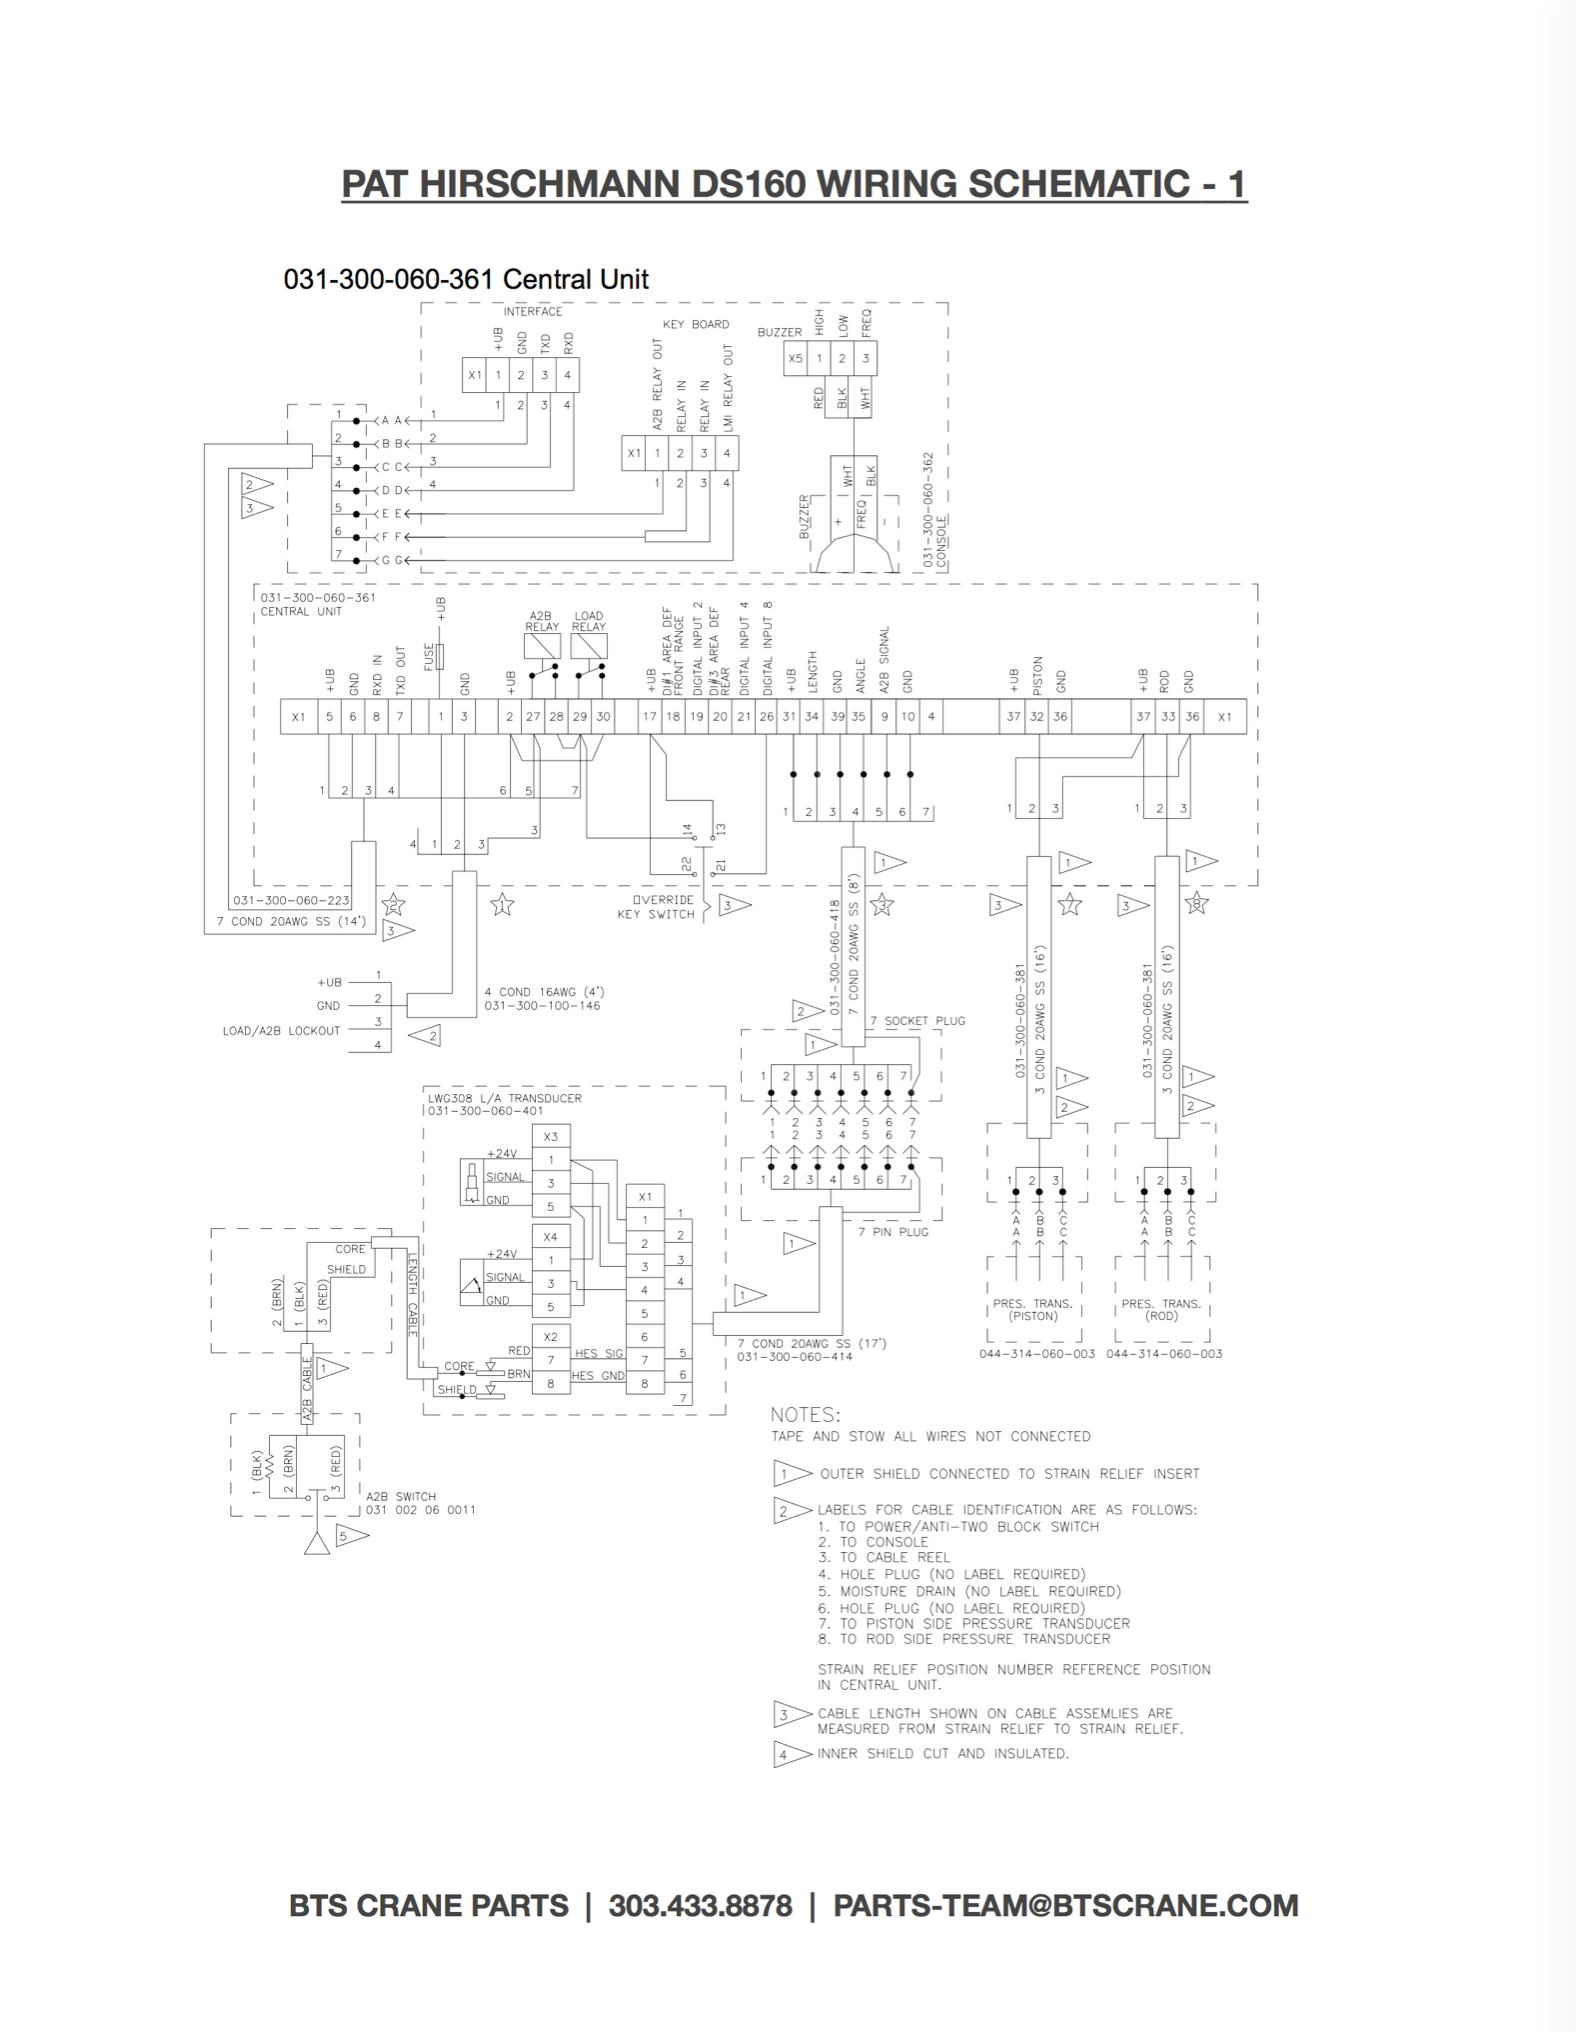 Pat Wiring Diagram And Schematics Pioneer Avic F700bt Best Z1 Vw Engine To N1 In D1 Source Ds160 Schematic